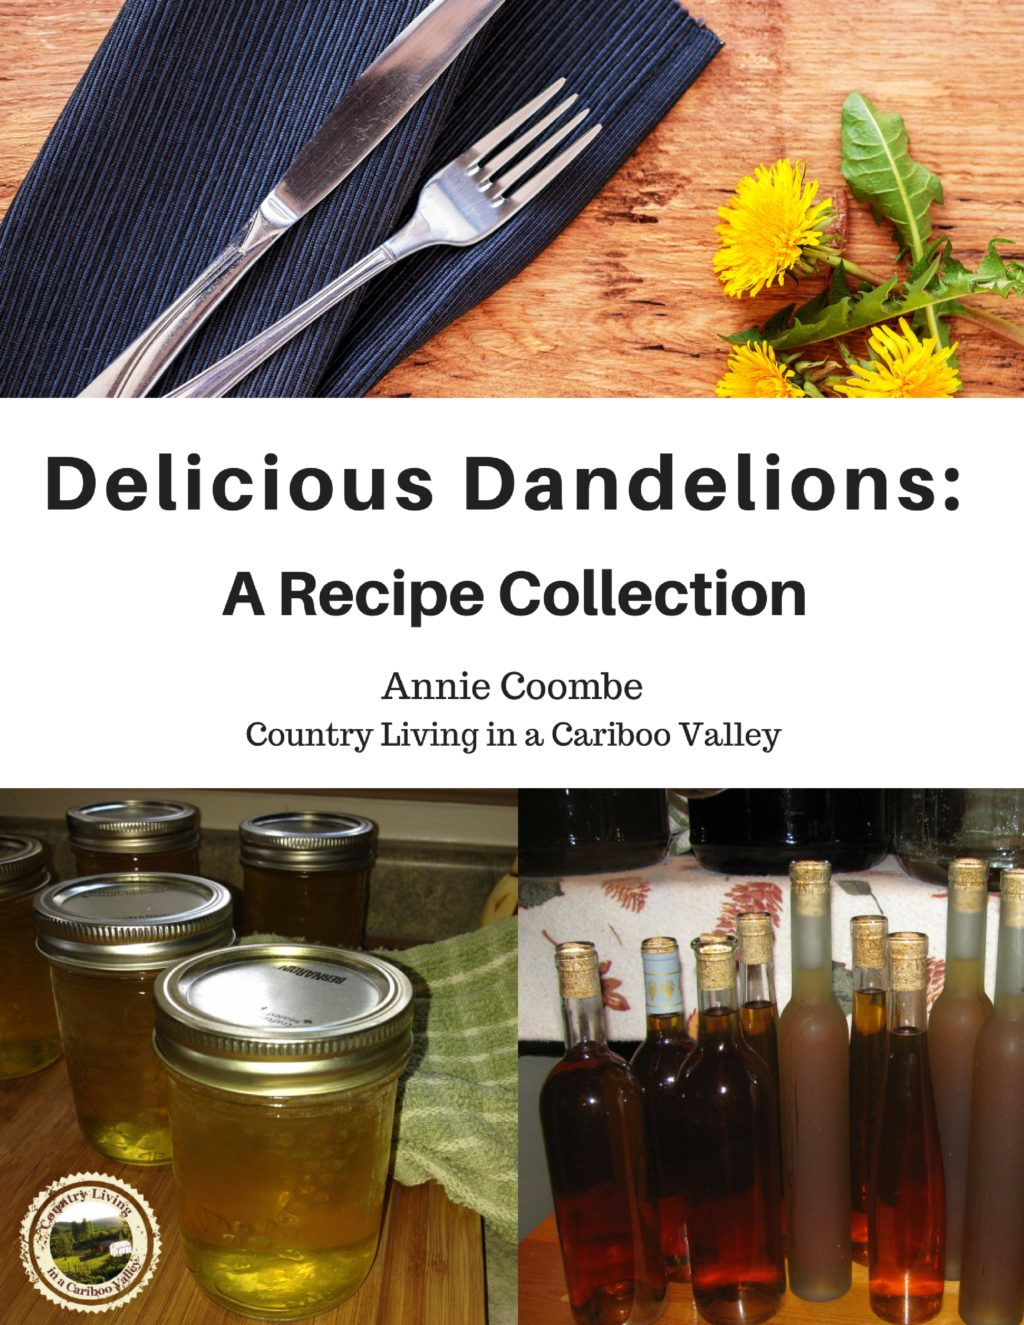 cooking with dandelions, eat dandelions